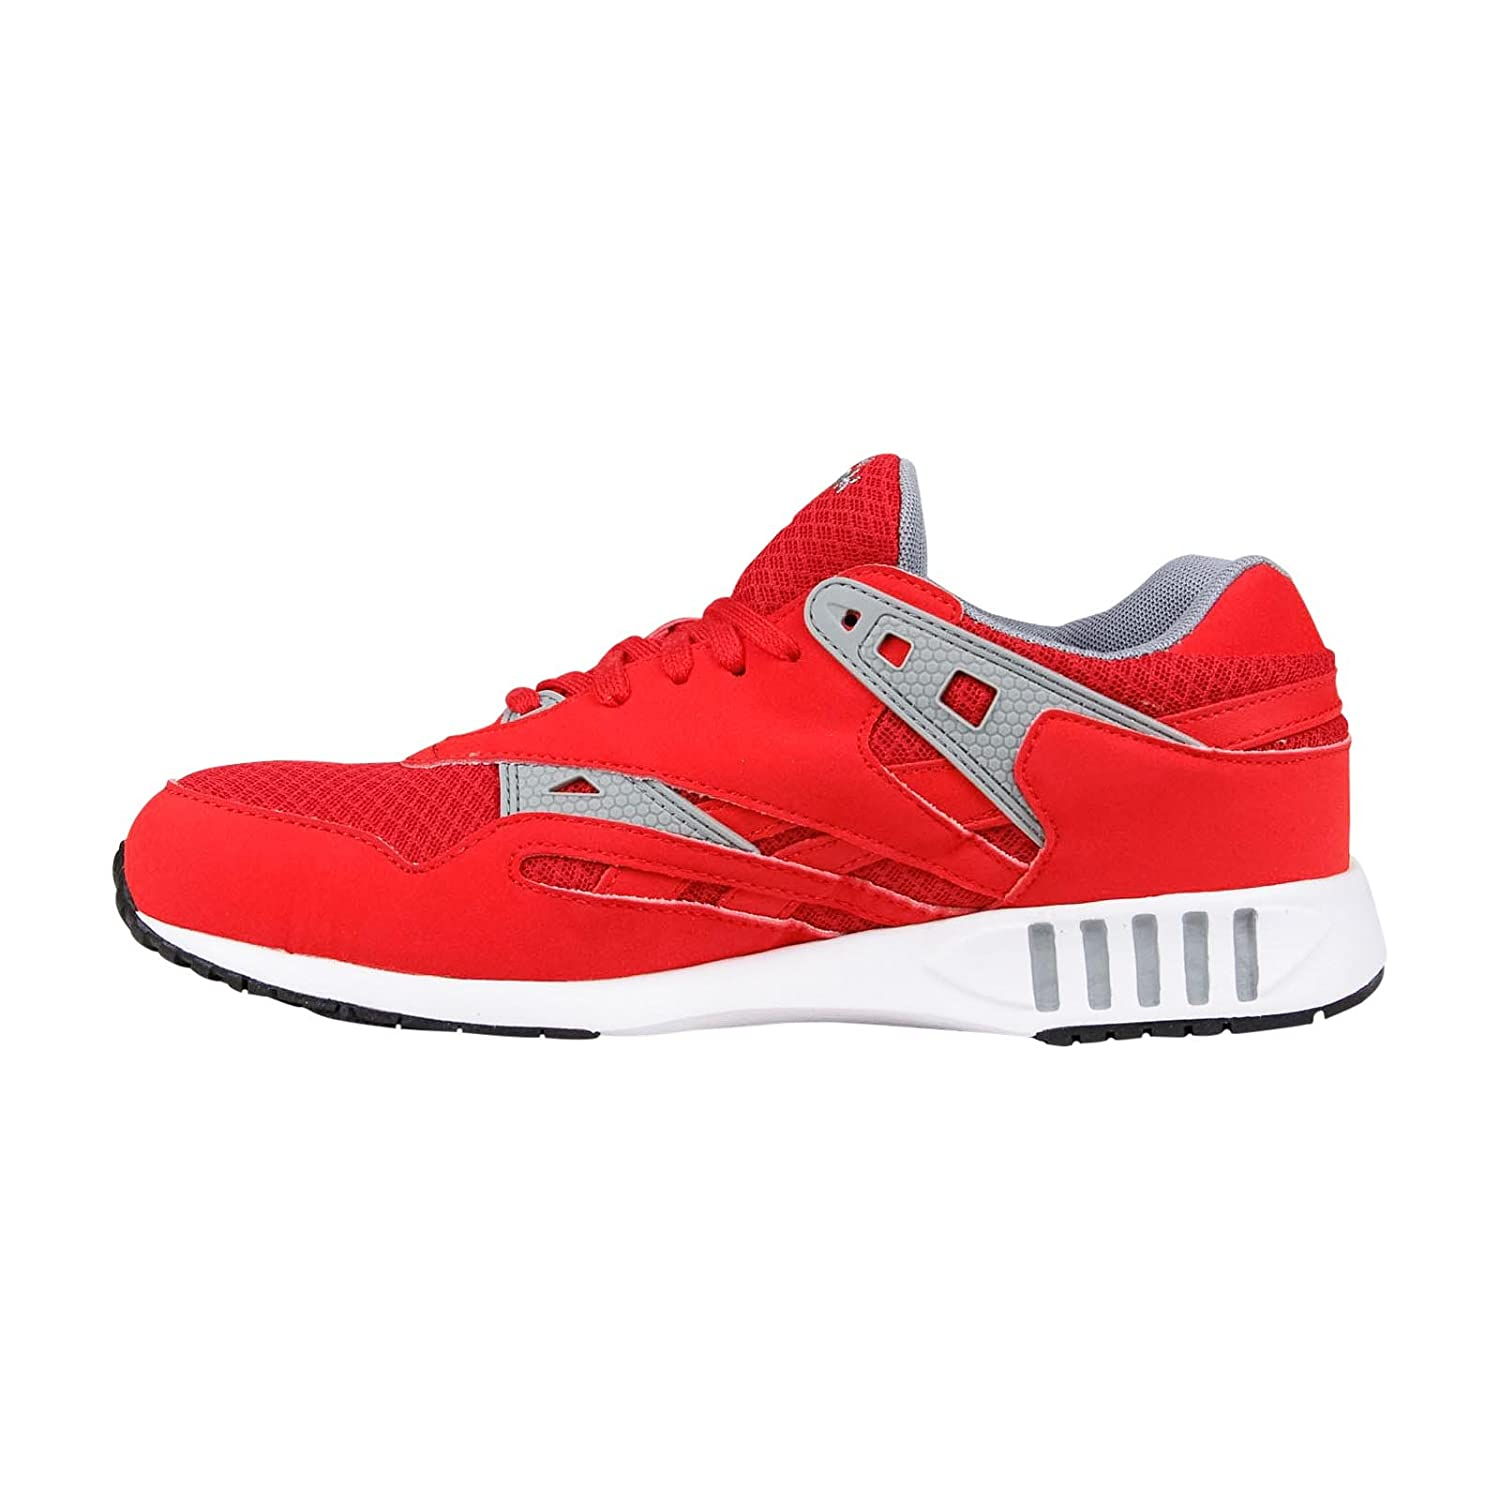 Reebok Mens Running Shoes Size 10.5 M V55119 Sole Trainer Red Synthetic-And-Mesh B00PBH87HA 8 D(M) US